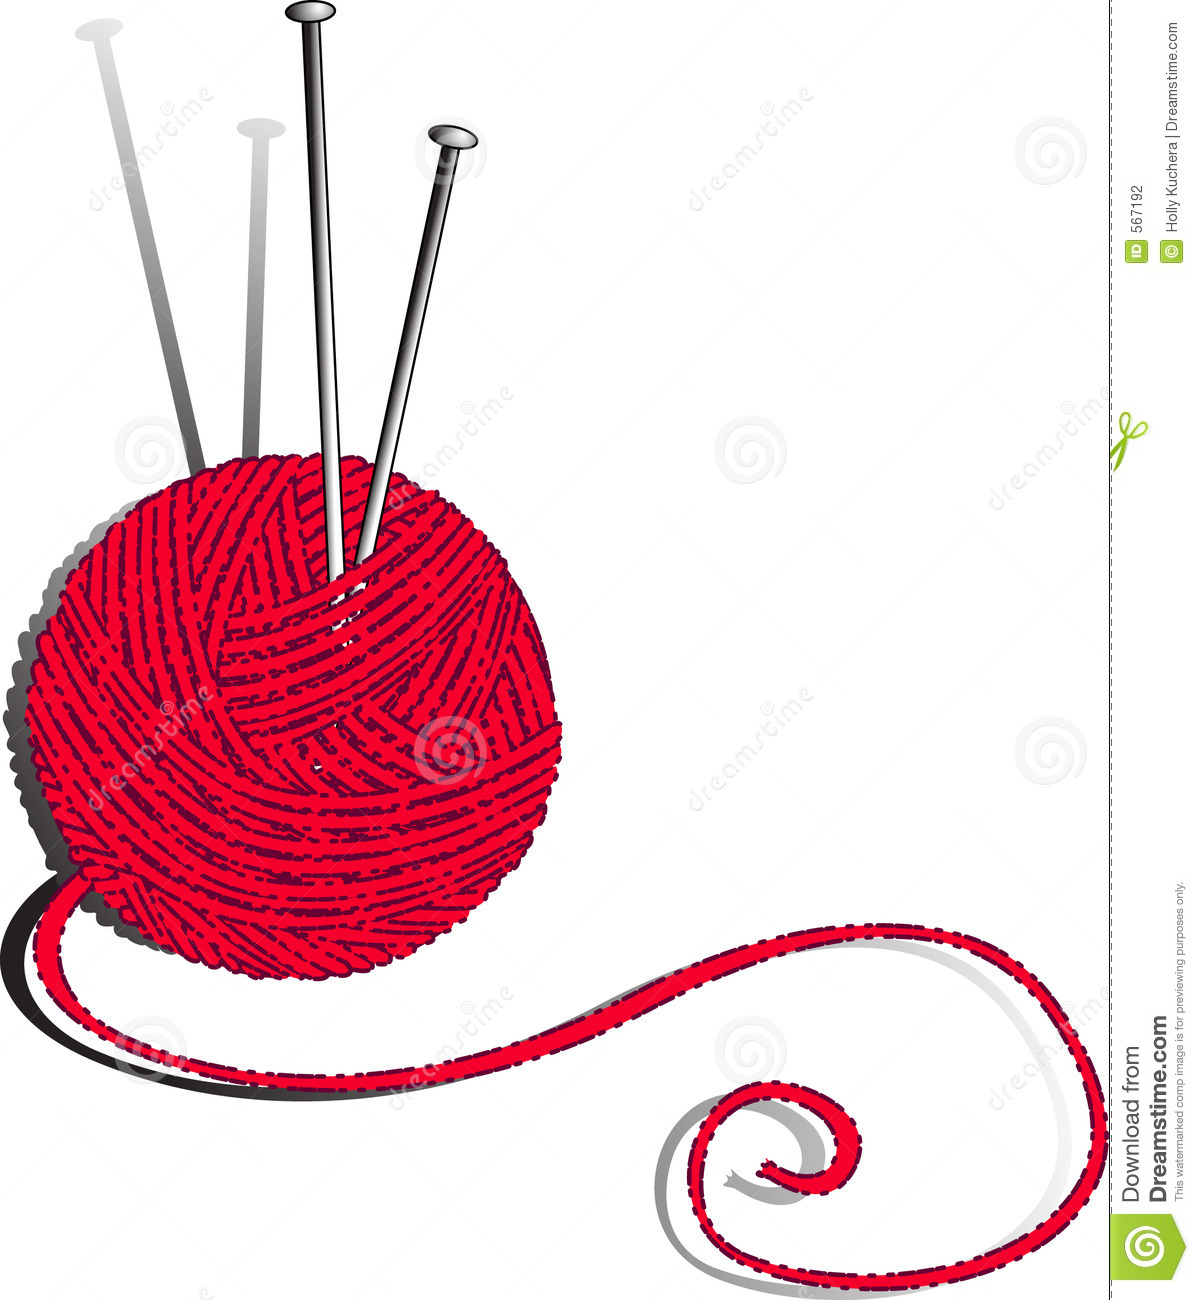 Free Clipart Knitting